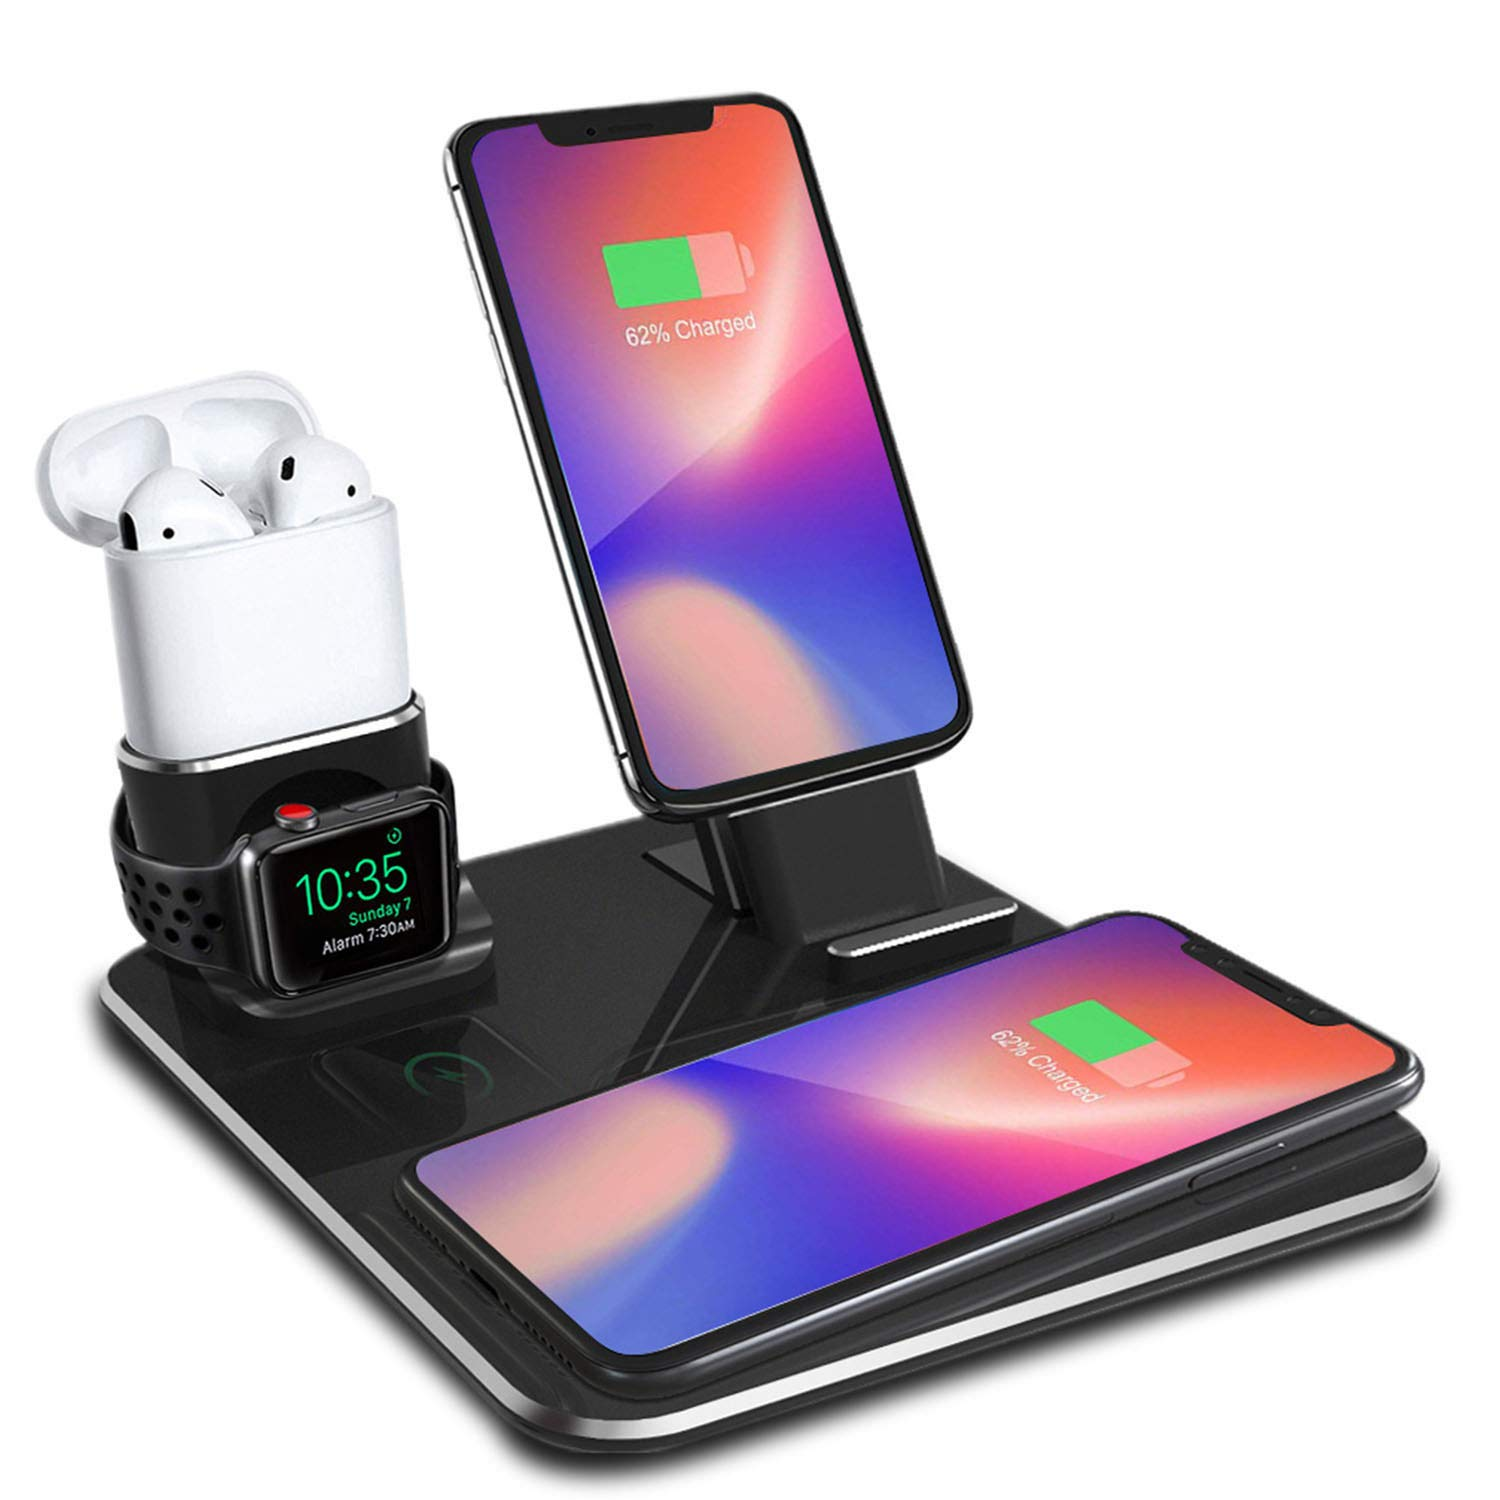 Charging Wireless Dock, Two Phone Stand Holder, Aluminum Charger Station Compatible iPhone X/XS/XS Max/8/8Plus/Samsung Galaxy S9/S9Plus, Compatible Apple watch/Airpods/iPhone7/7p/6/6Plus